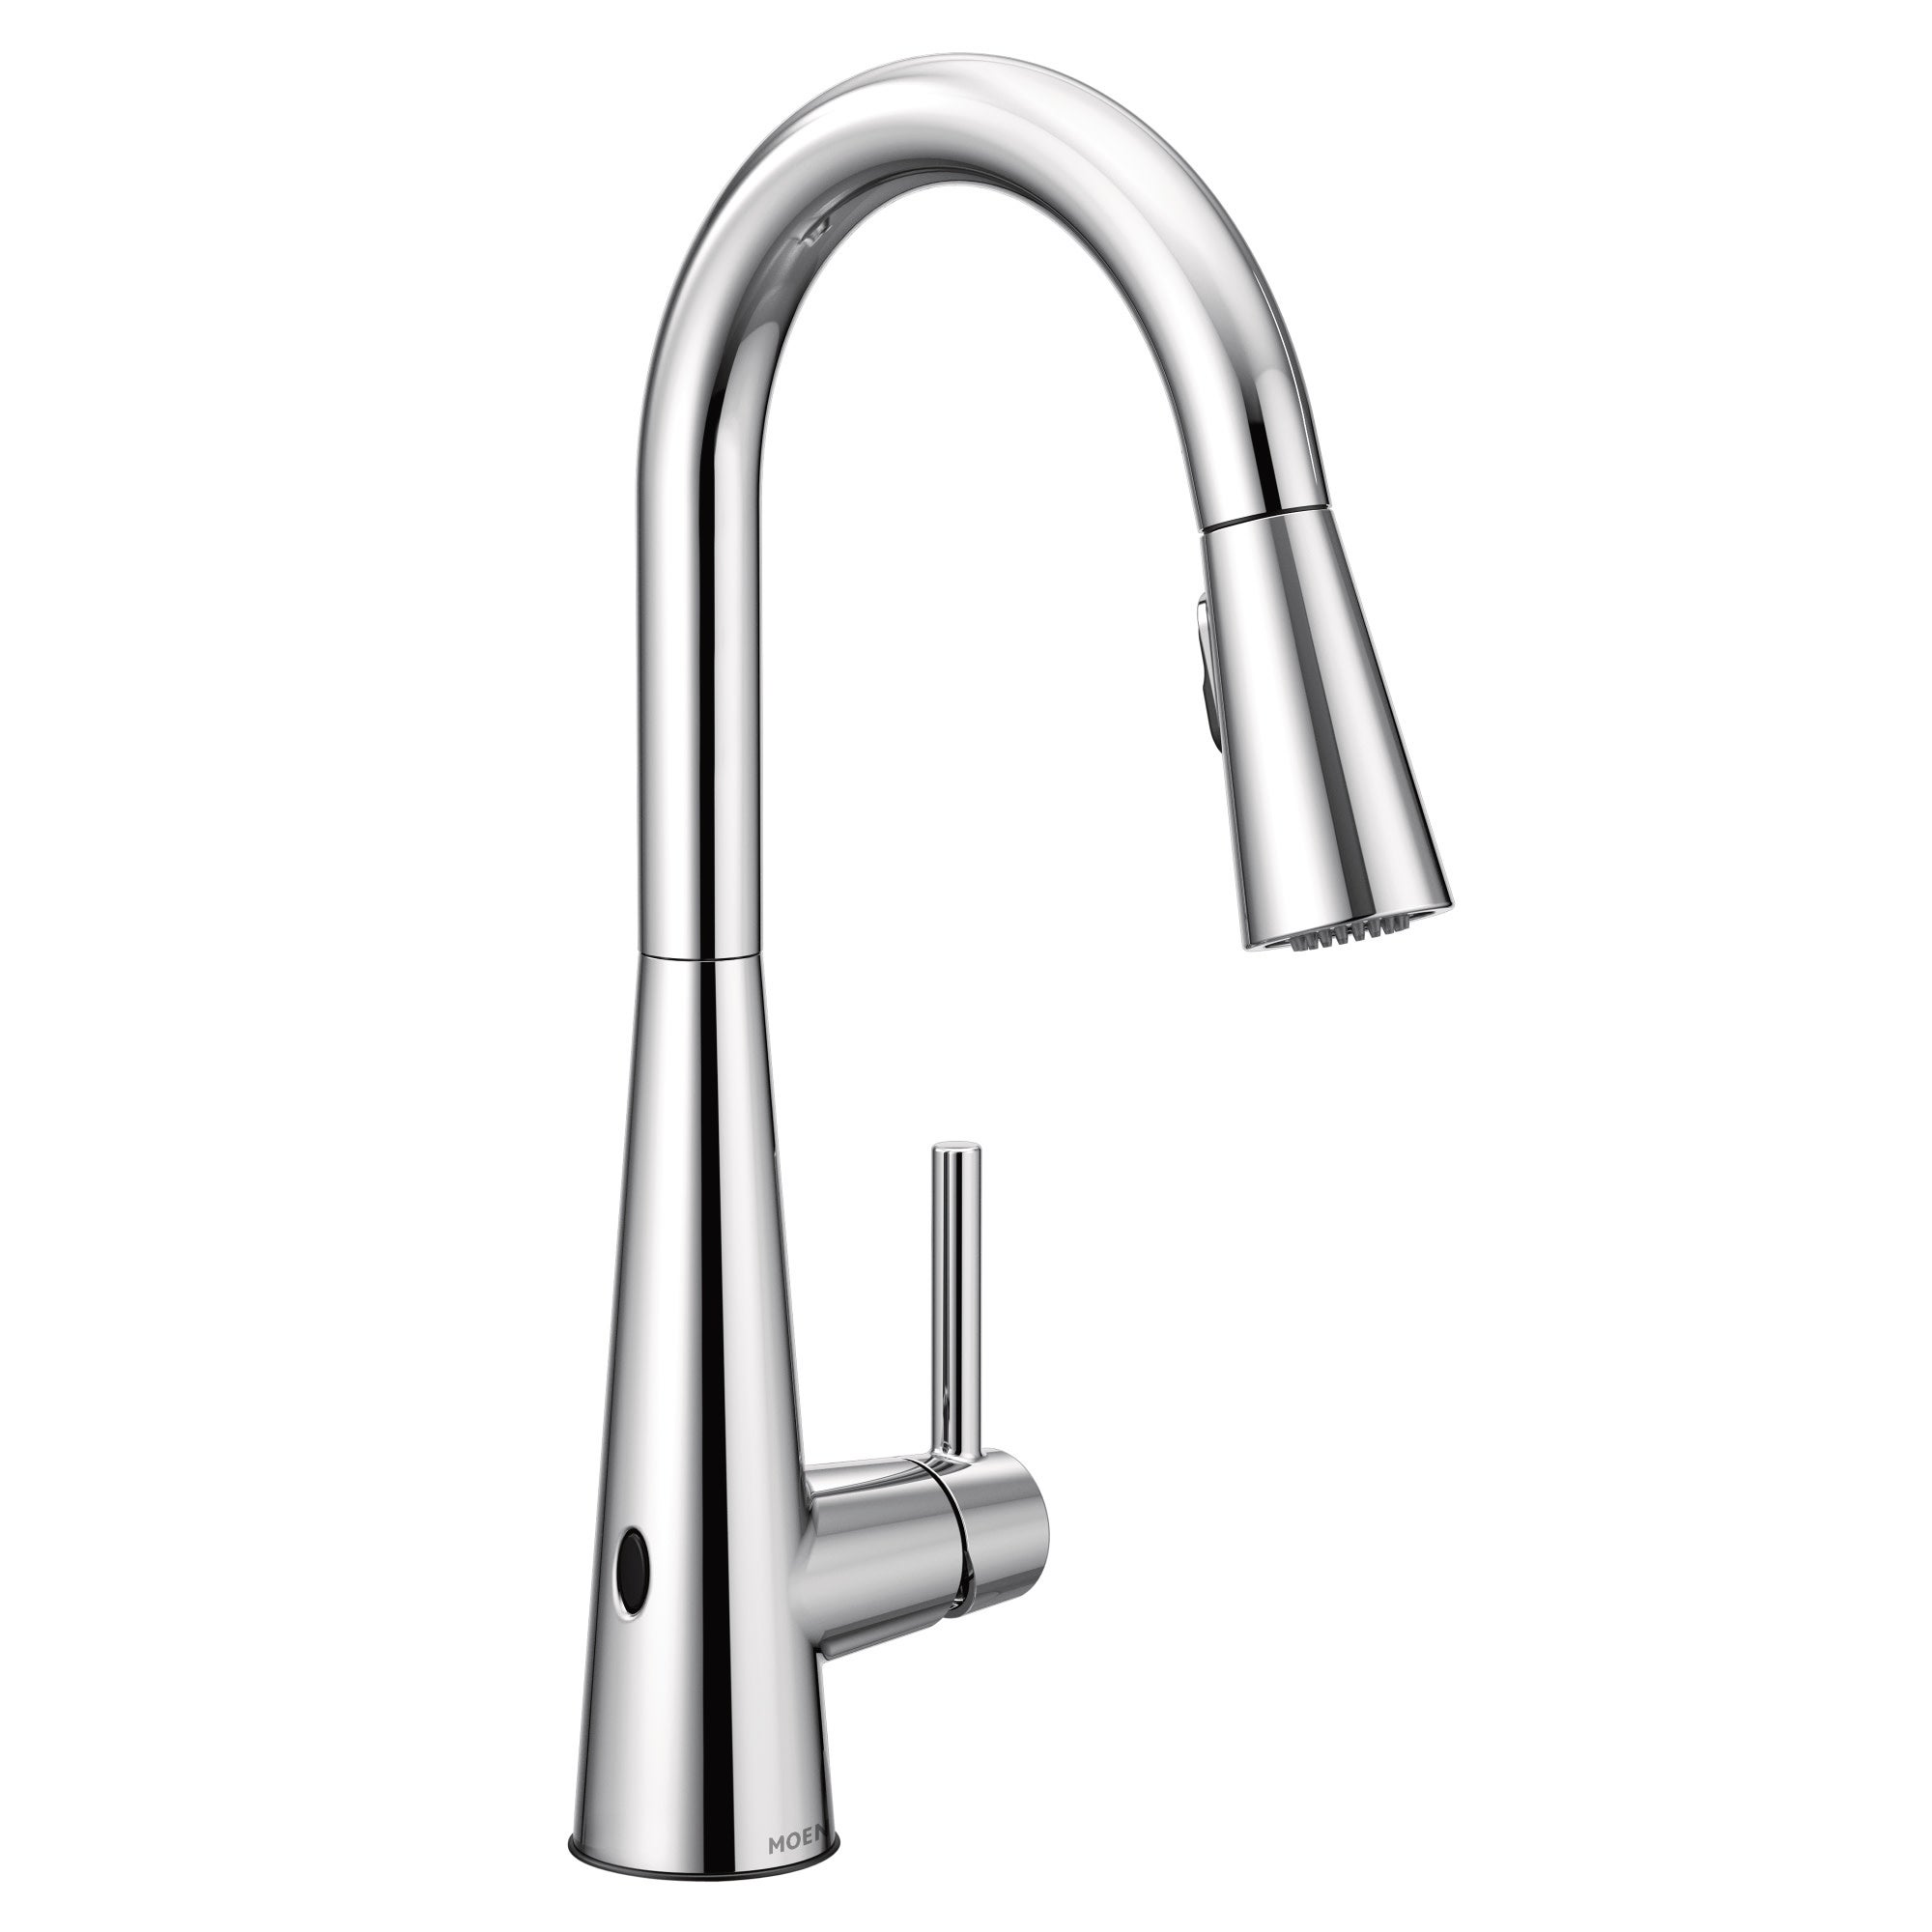 Moen 7864ew Sleek 1 5 Gpm Single Hole Pull Down Kitchen Faucet With Reflex Motionsense Wave Duralast Duralock And Power